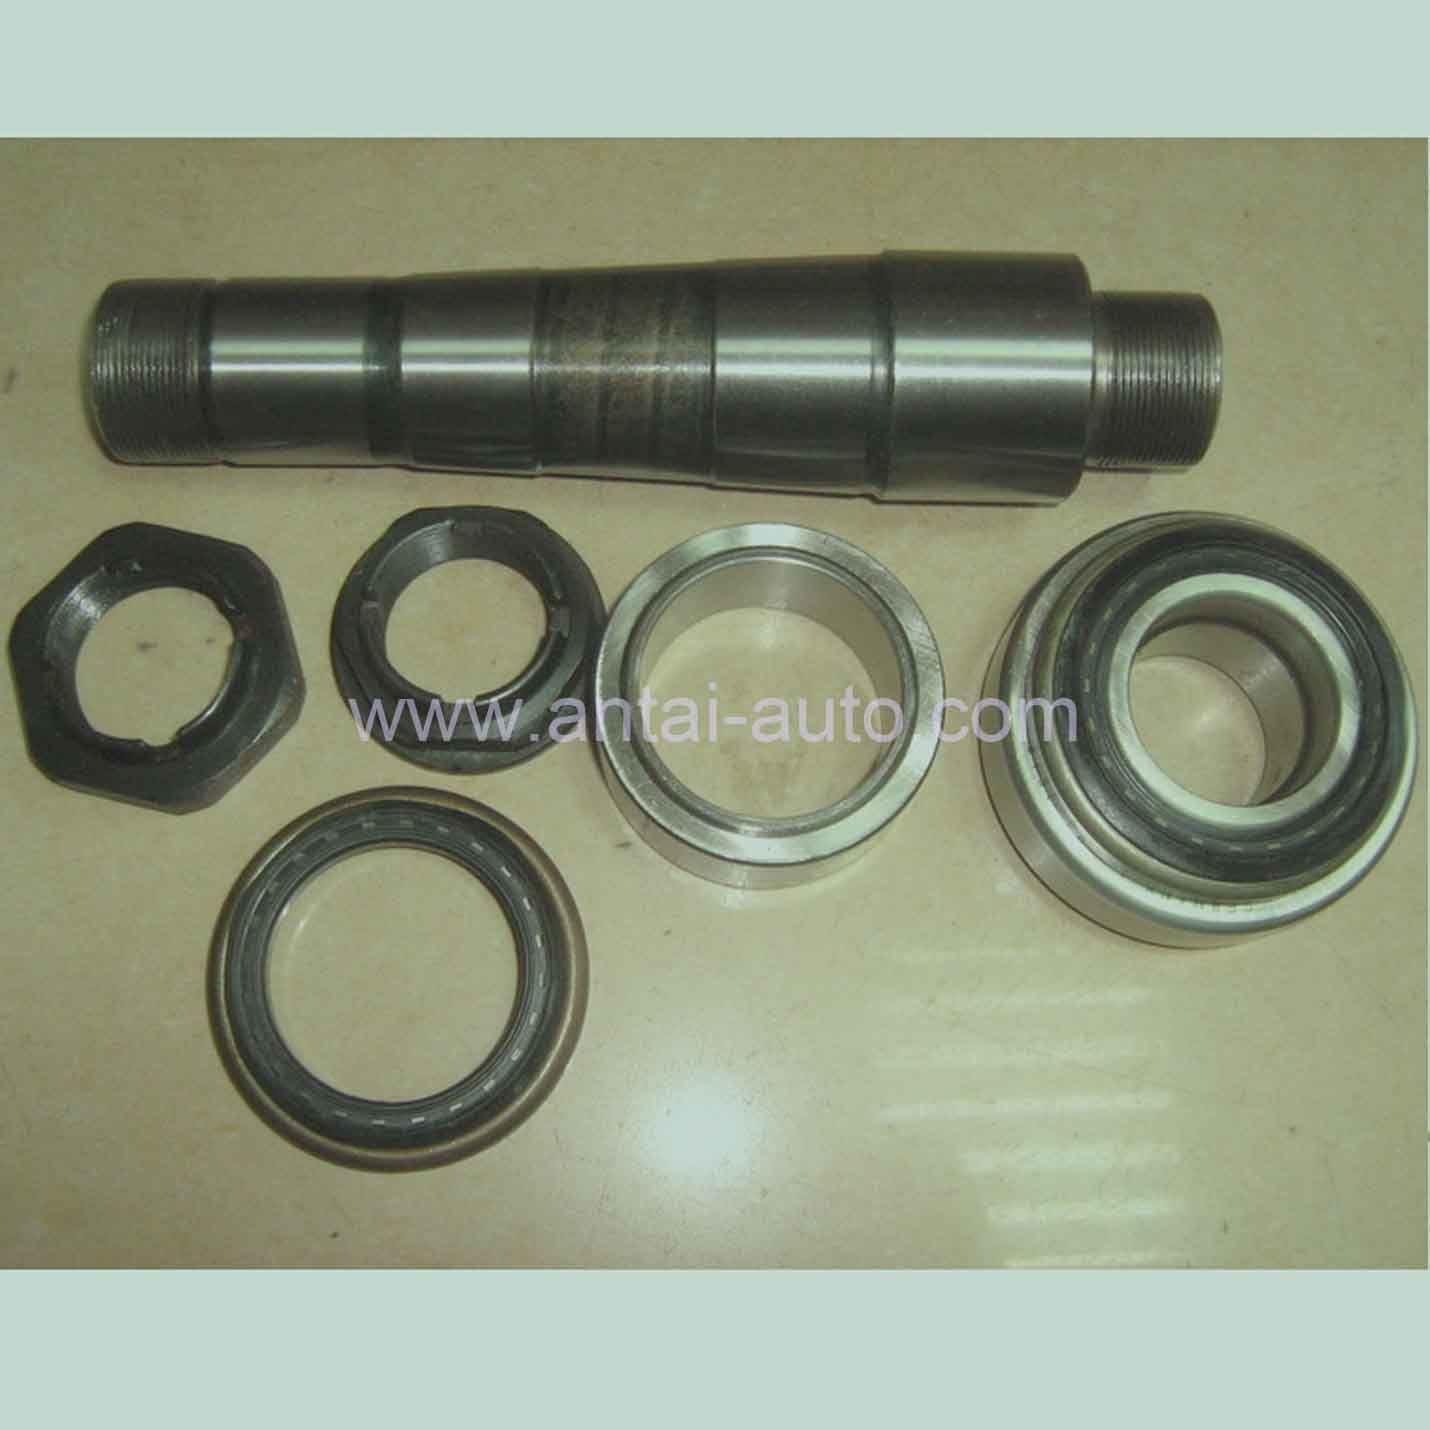 20751021 King Pin Kits For VOLVO Truck